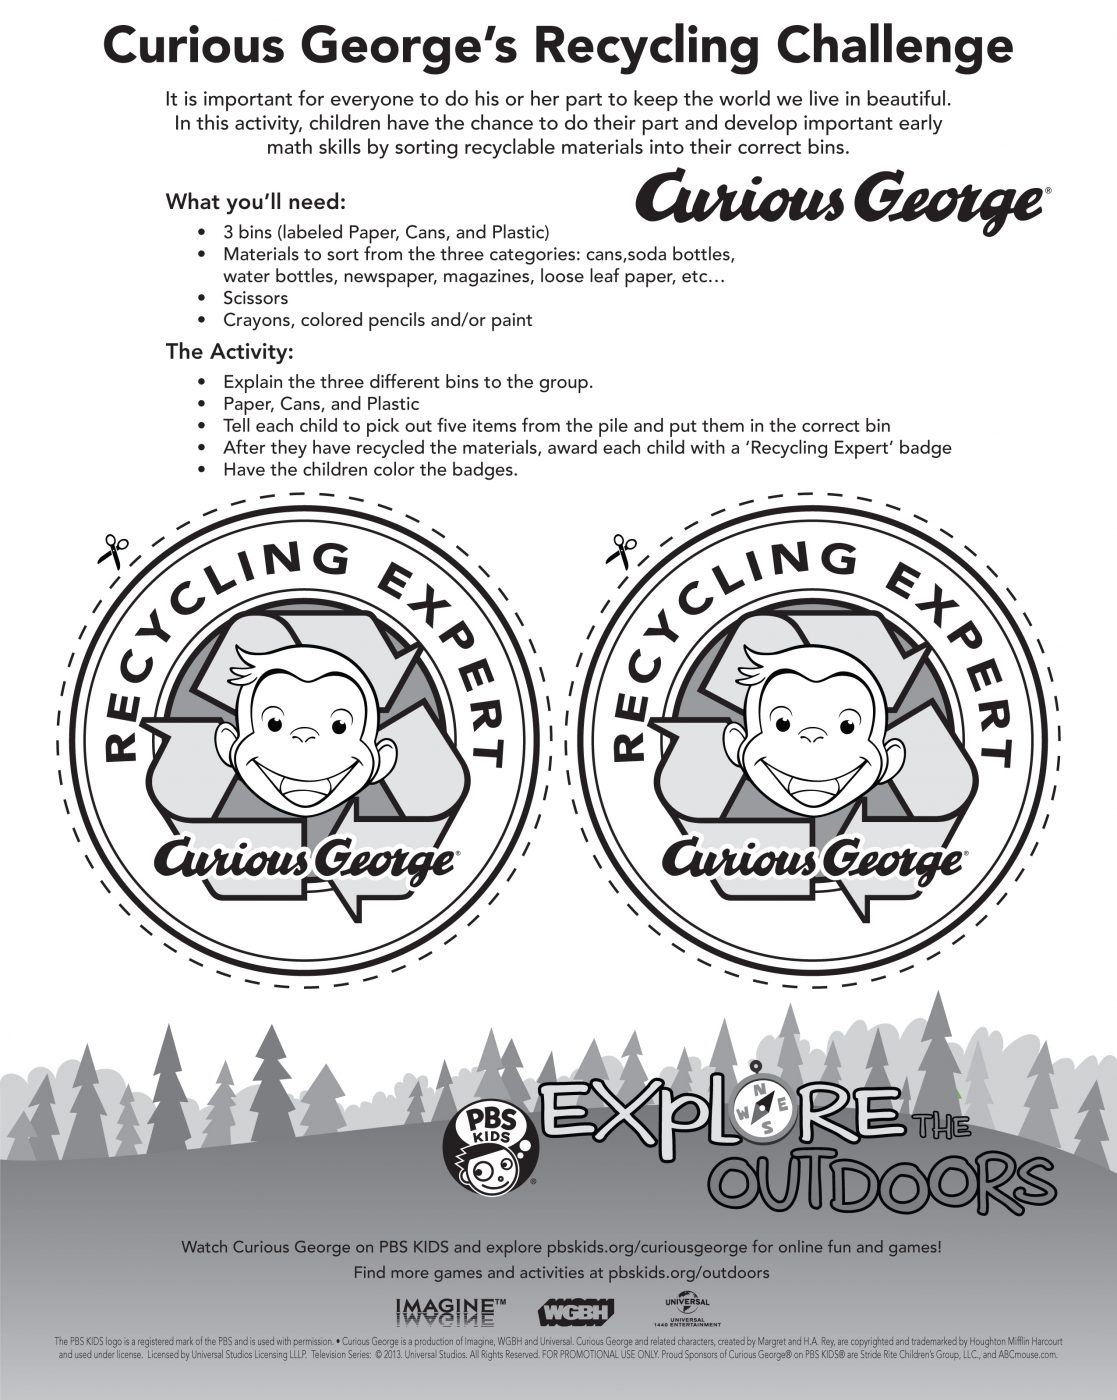 Curious George's Recycling Challenge